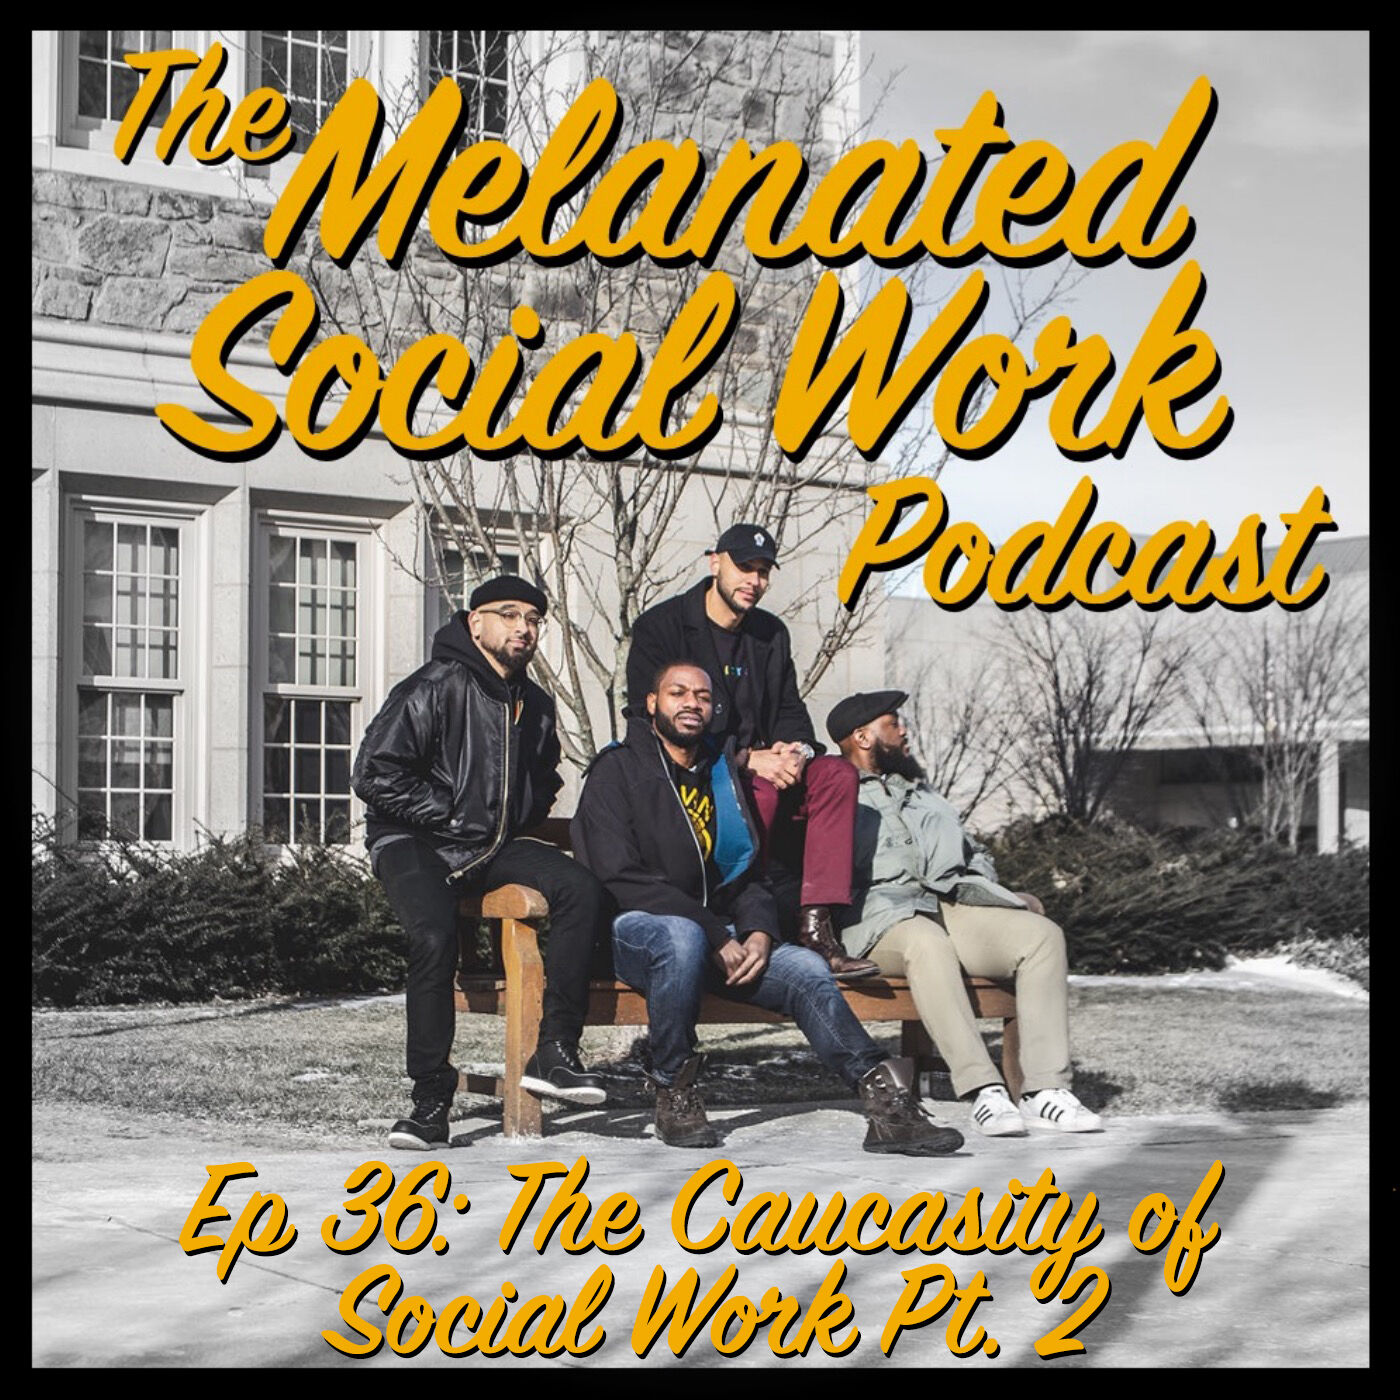 Episode 36: The Caucasity of Social Work Pt. 2